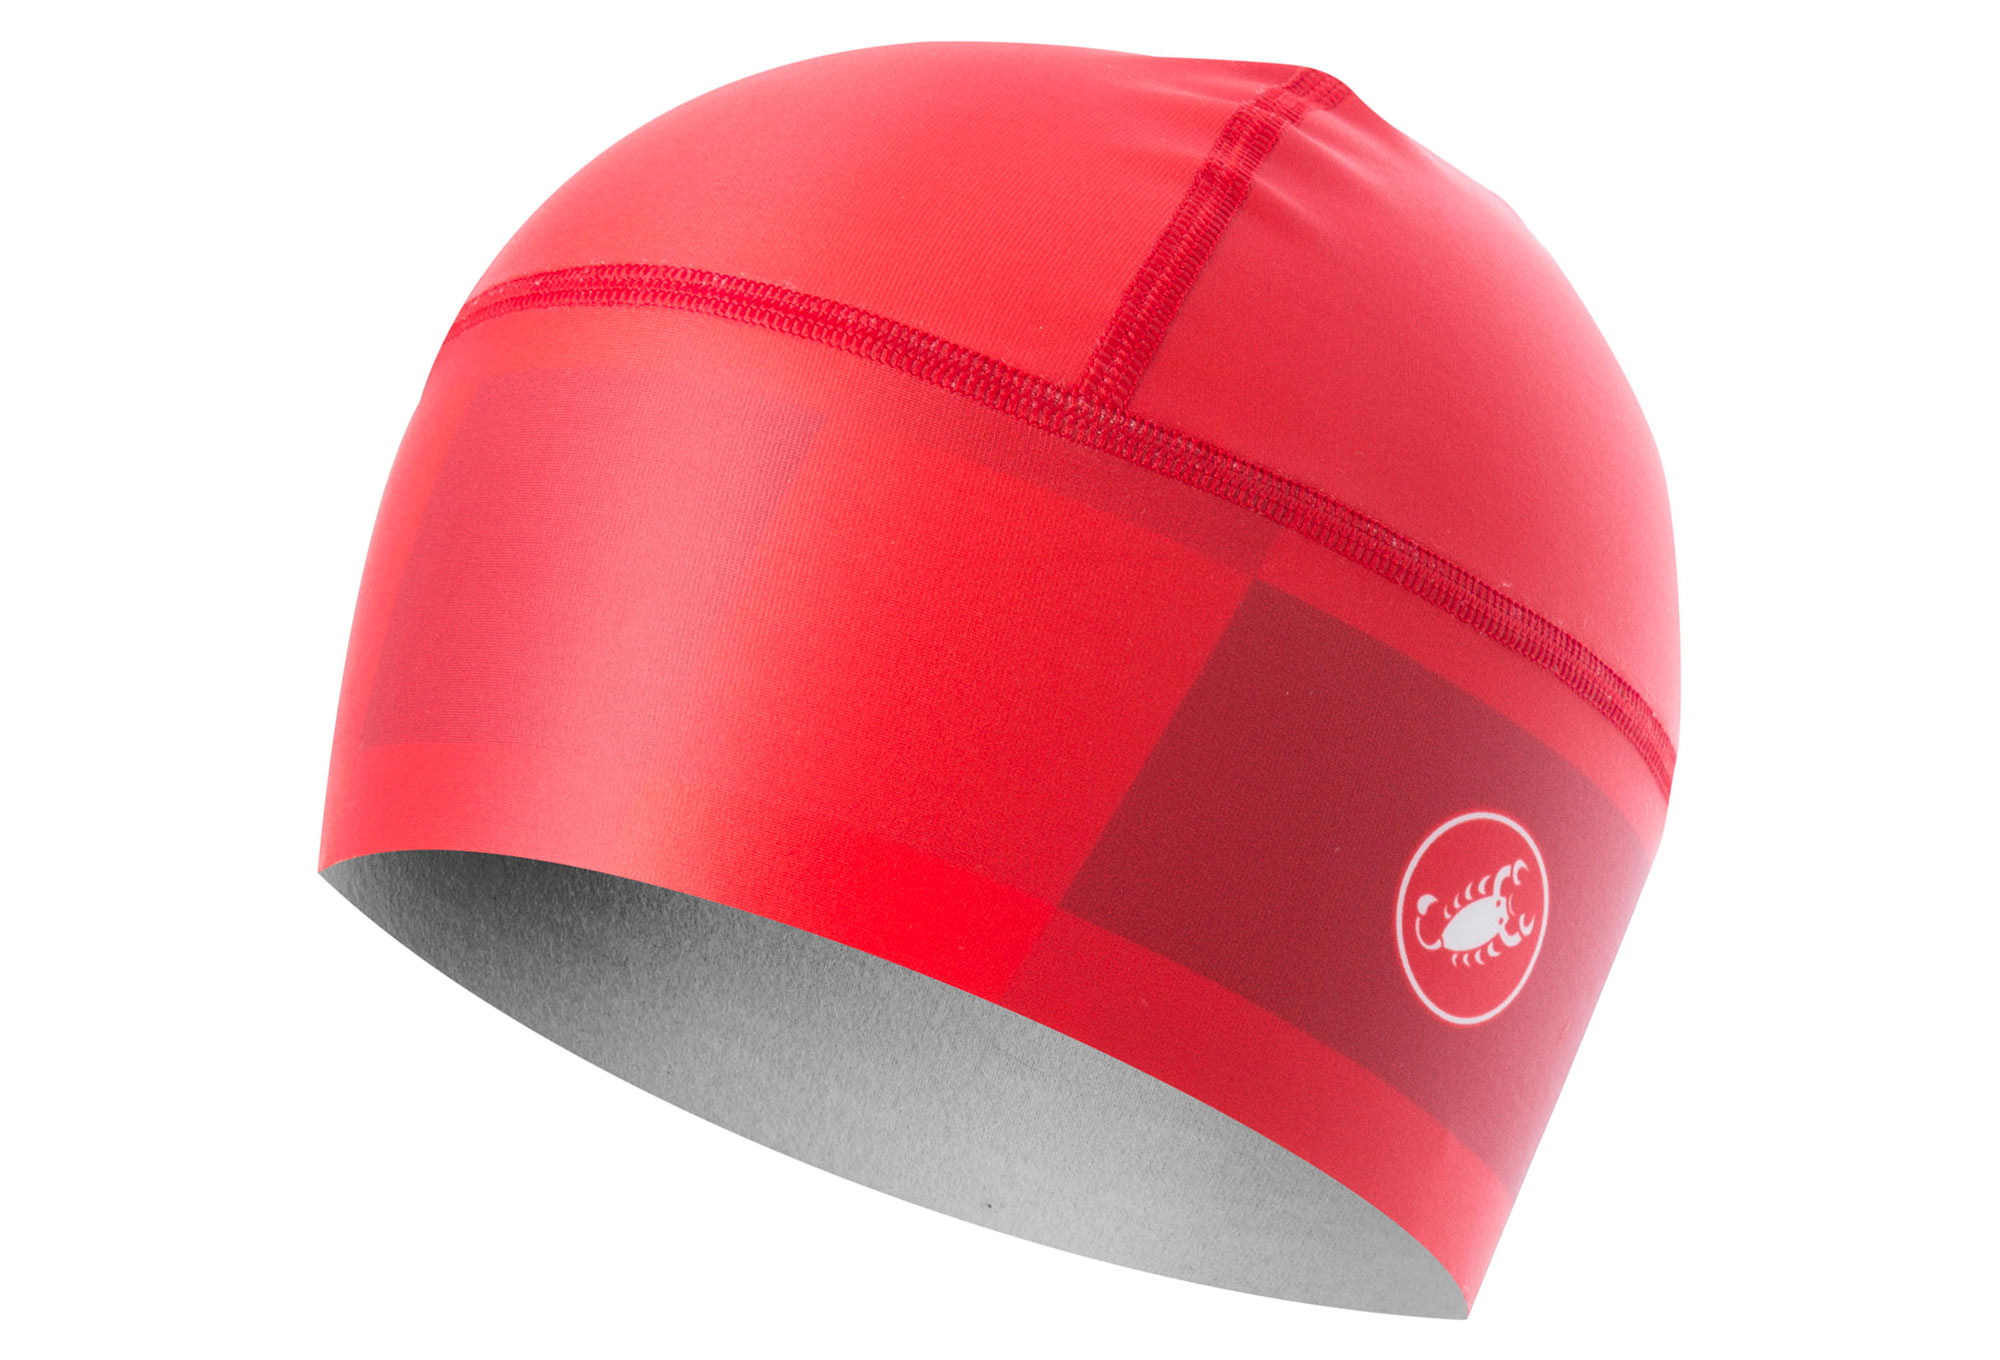 9f5dcfad121 Castelli Arrivo 3 Thermo Under-Helmet Red